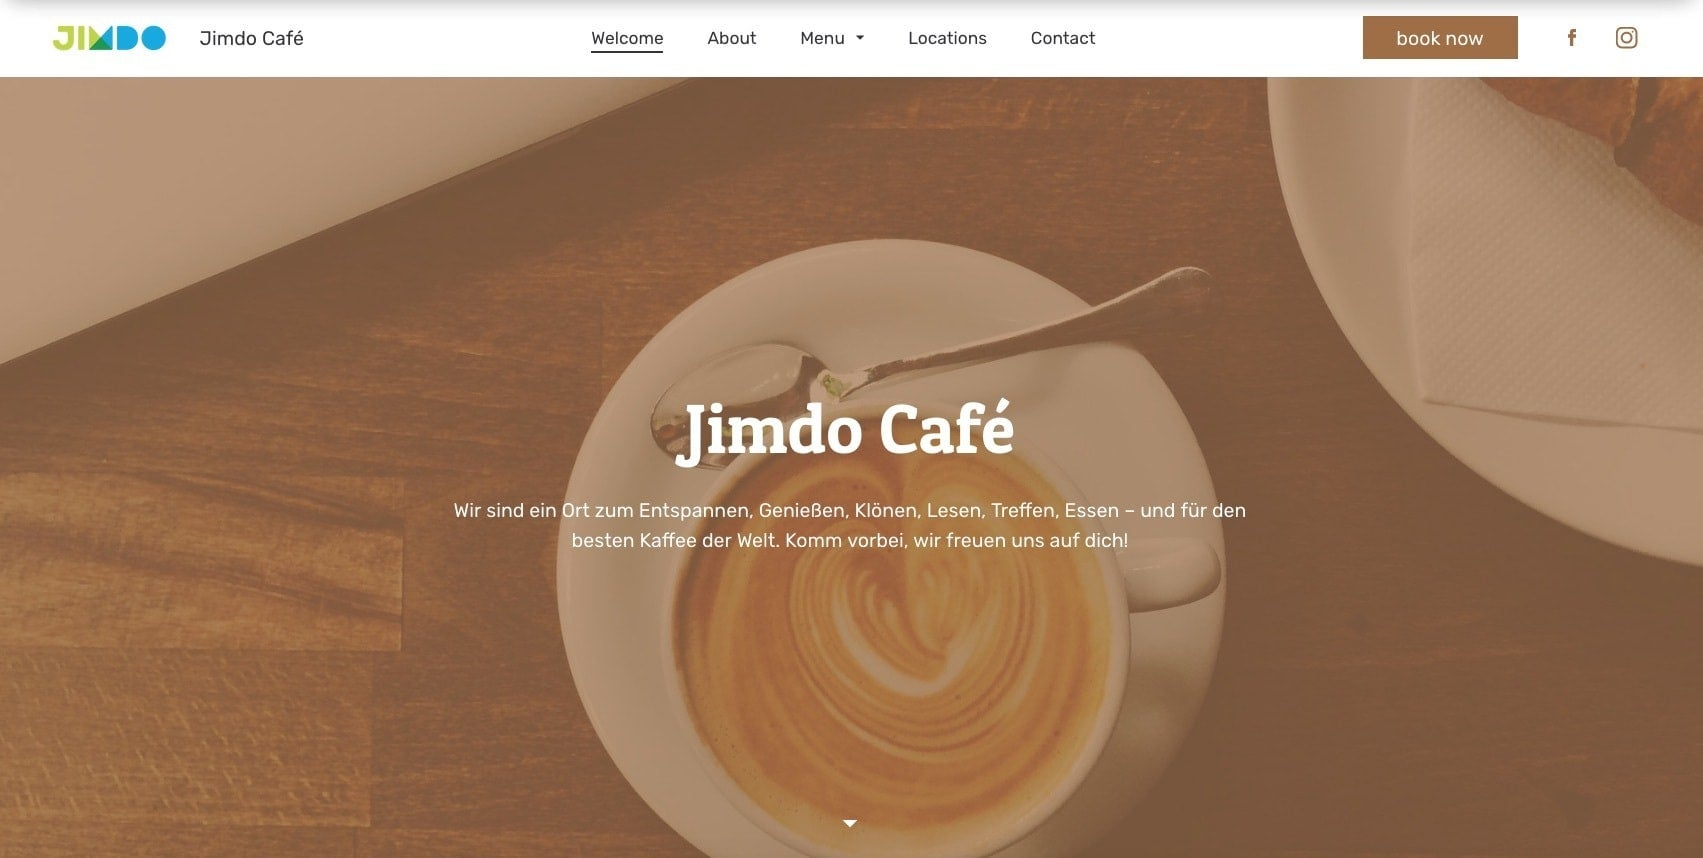 An example of a shorter, clearer website navigation menu on a Jimdo website.